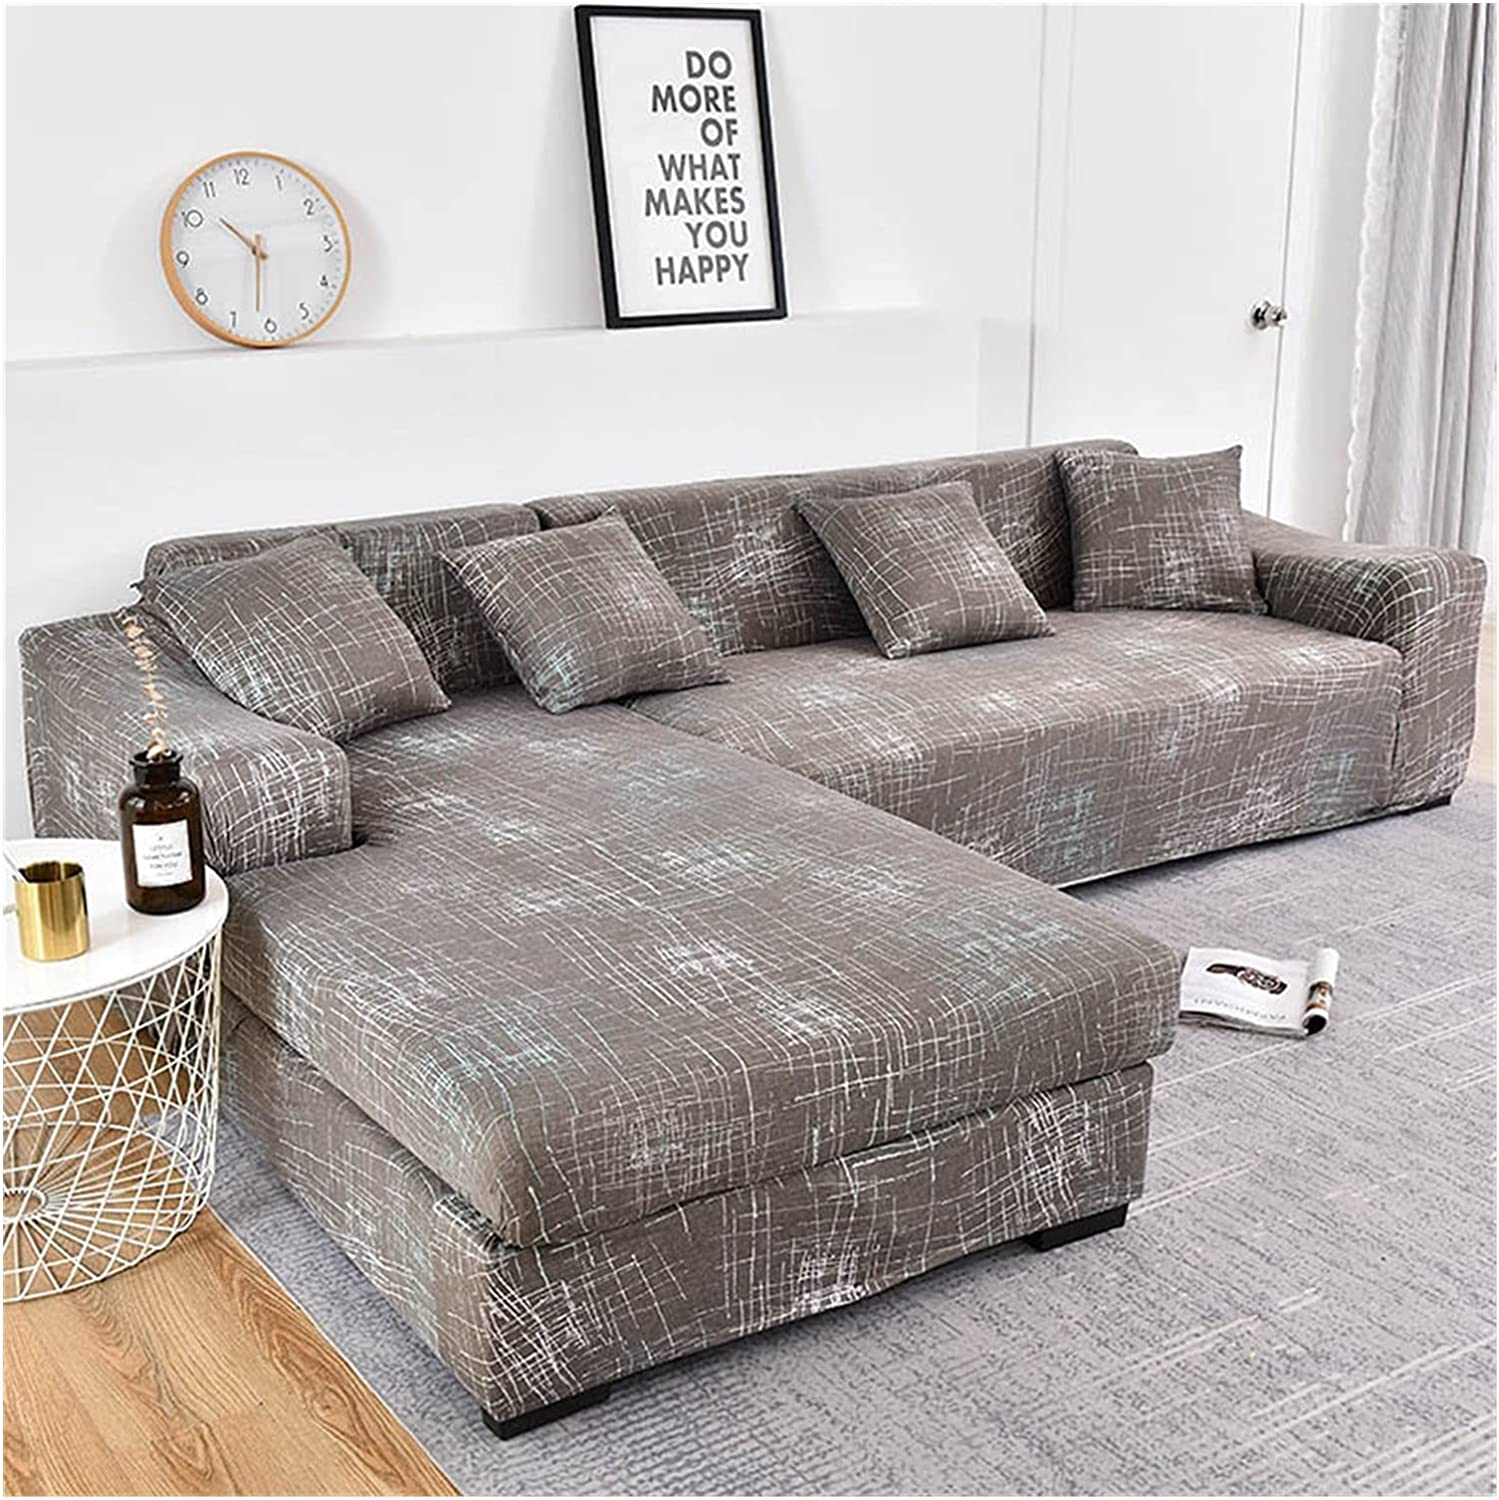 JDKJ Sofa Max 83% OFF Cover Geometric All items free shipping Couch Liv for Elastic